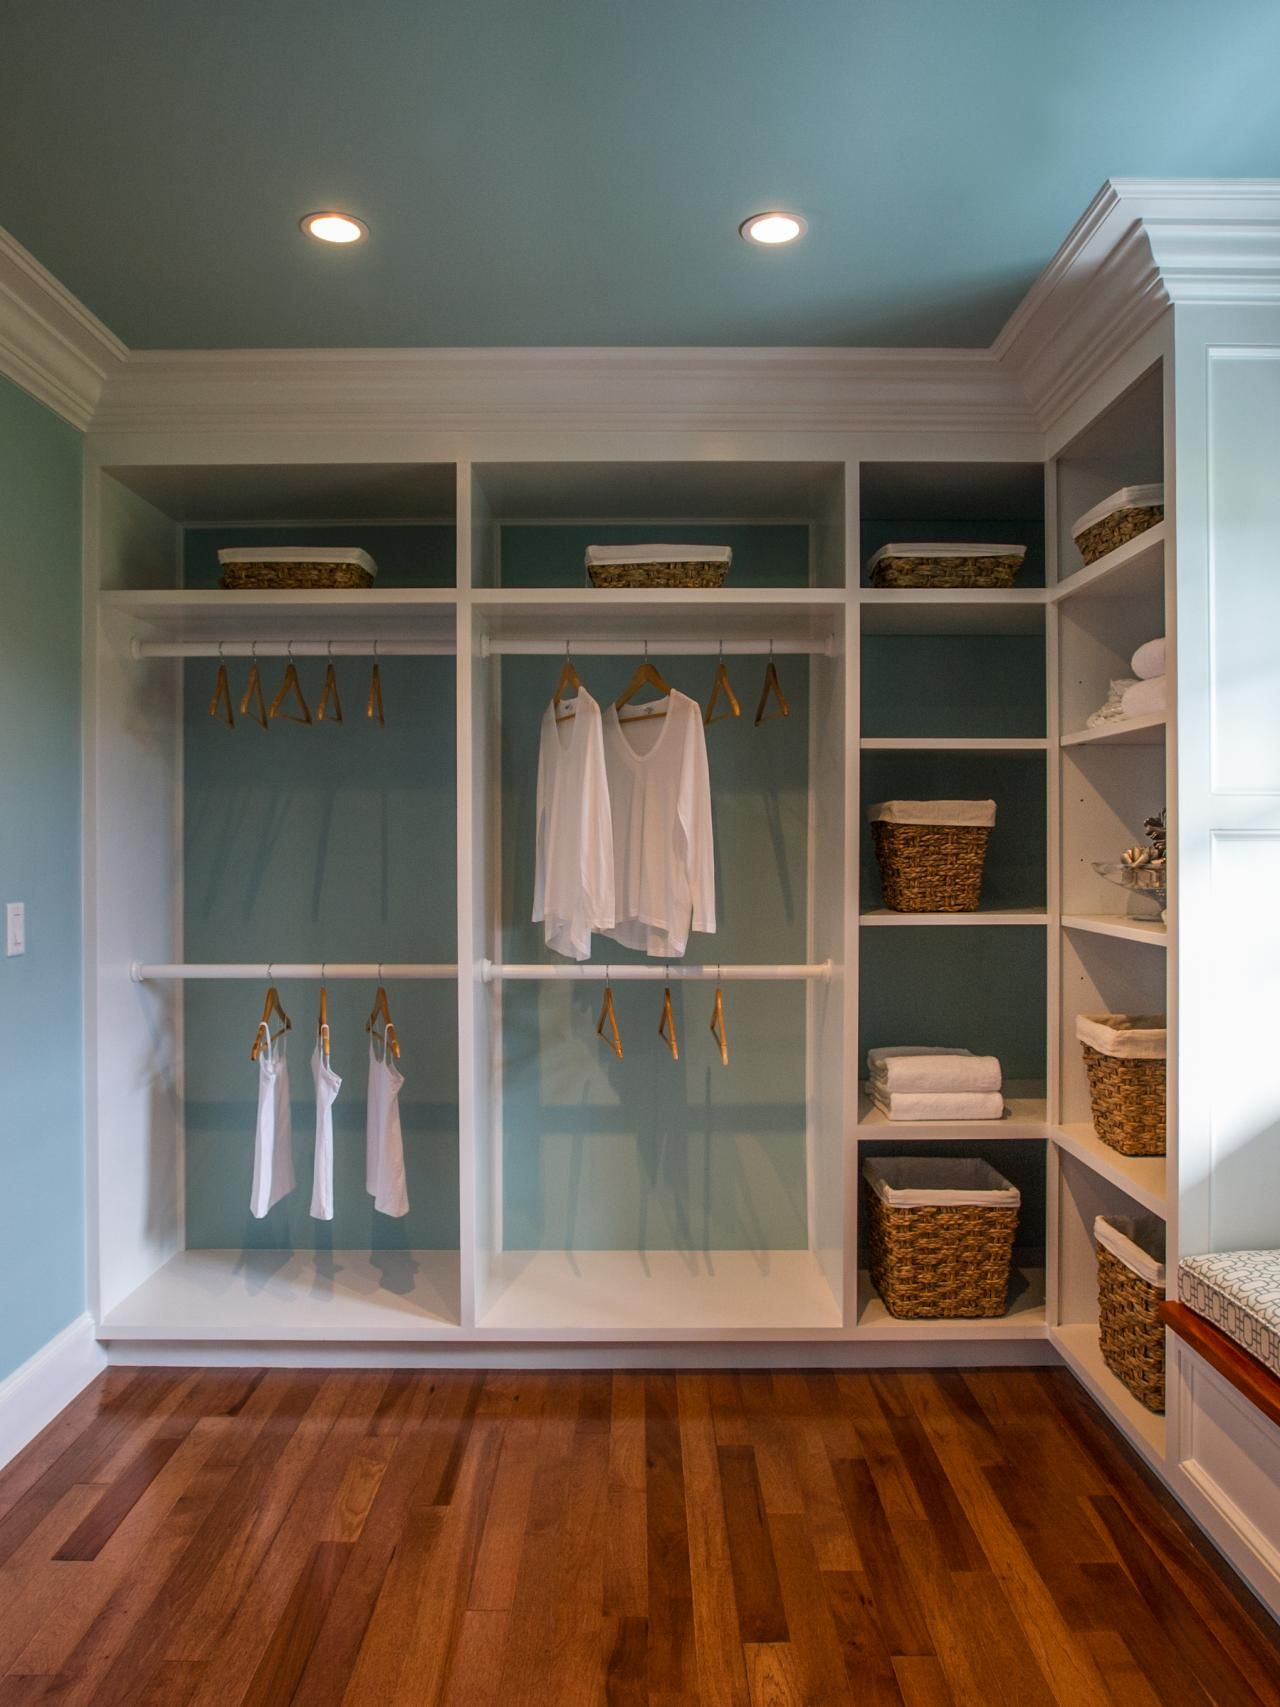 Hgtv Dream Home 2015 Master Closet: Nice, Except For What Most Closets Seem To Be Missing...a Spot To Hang Long Skirts, Maxi Dresses